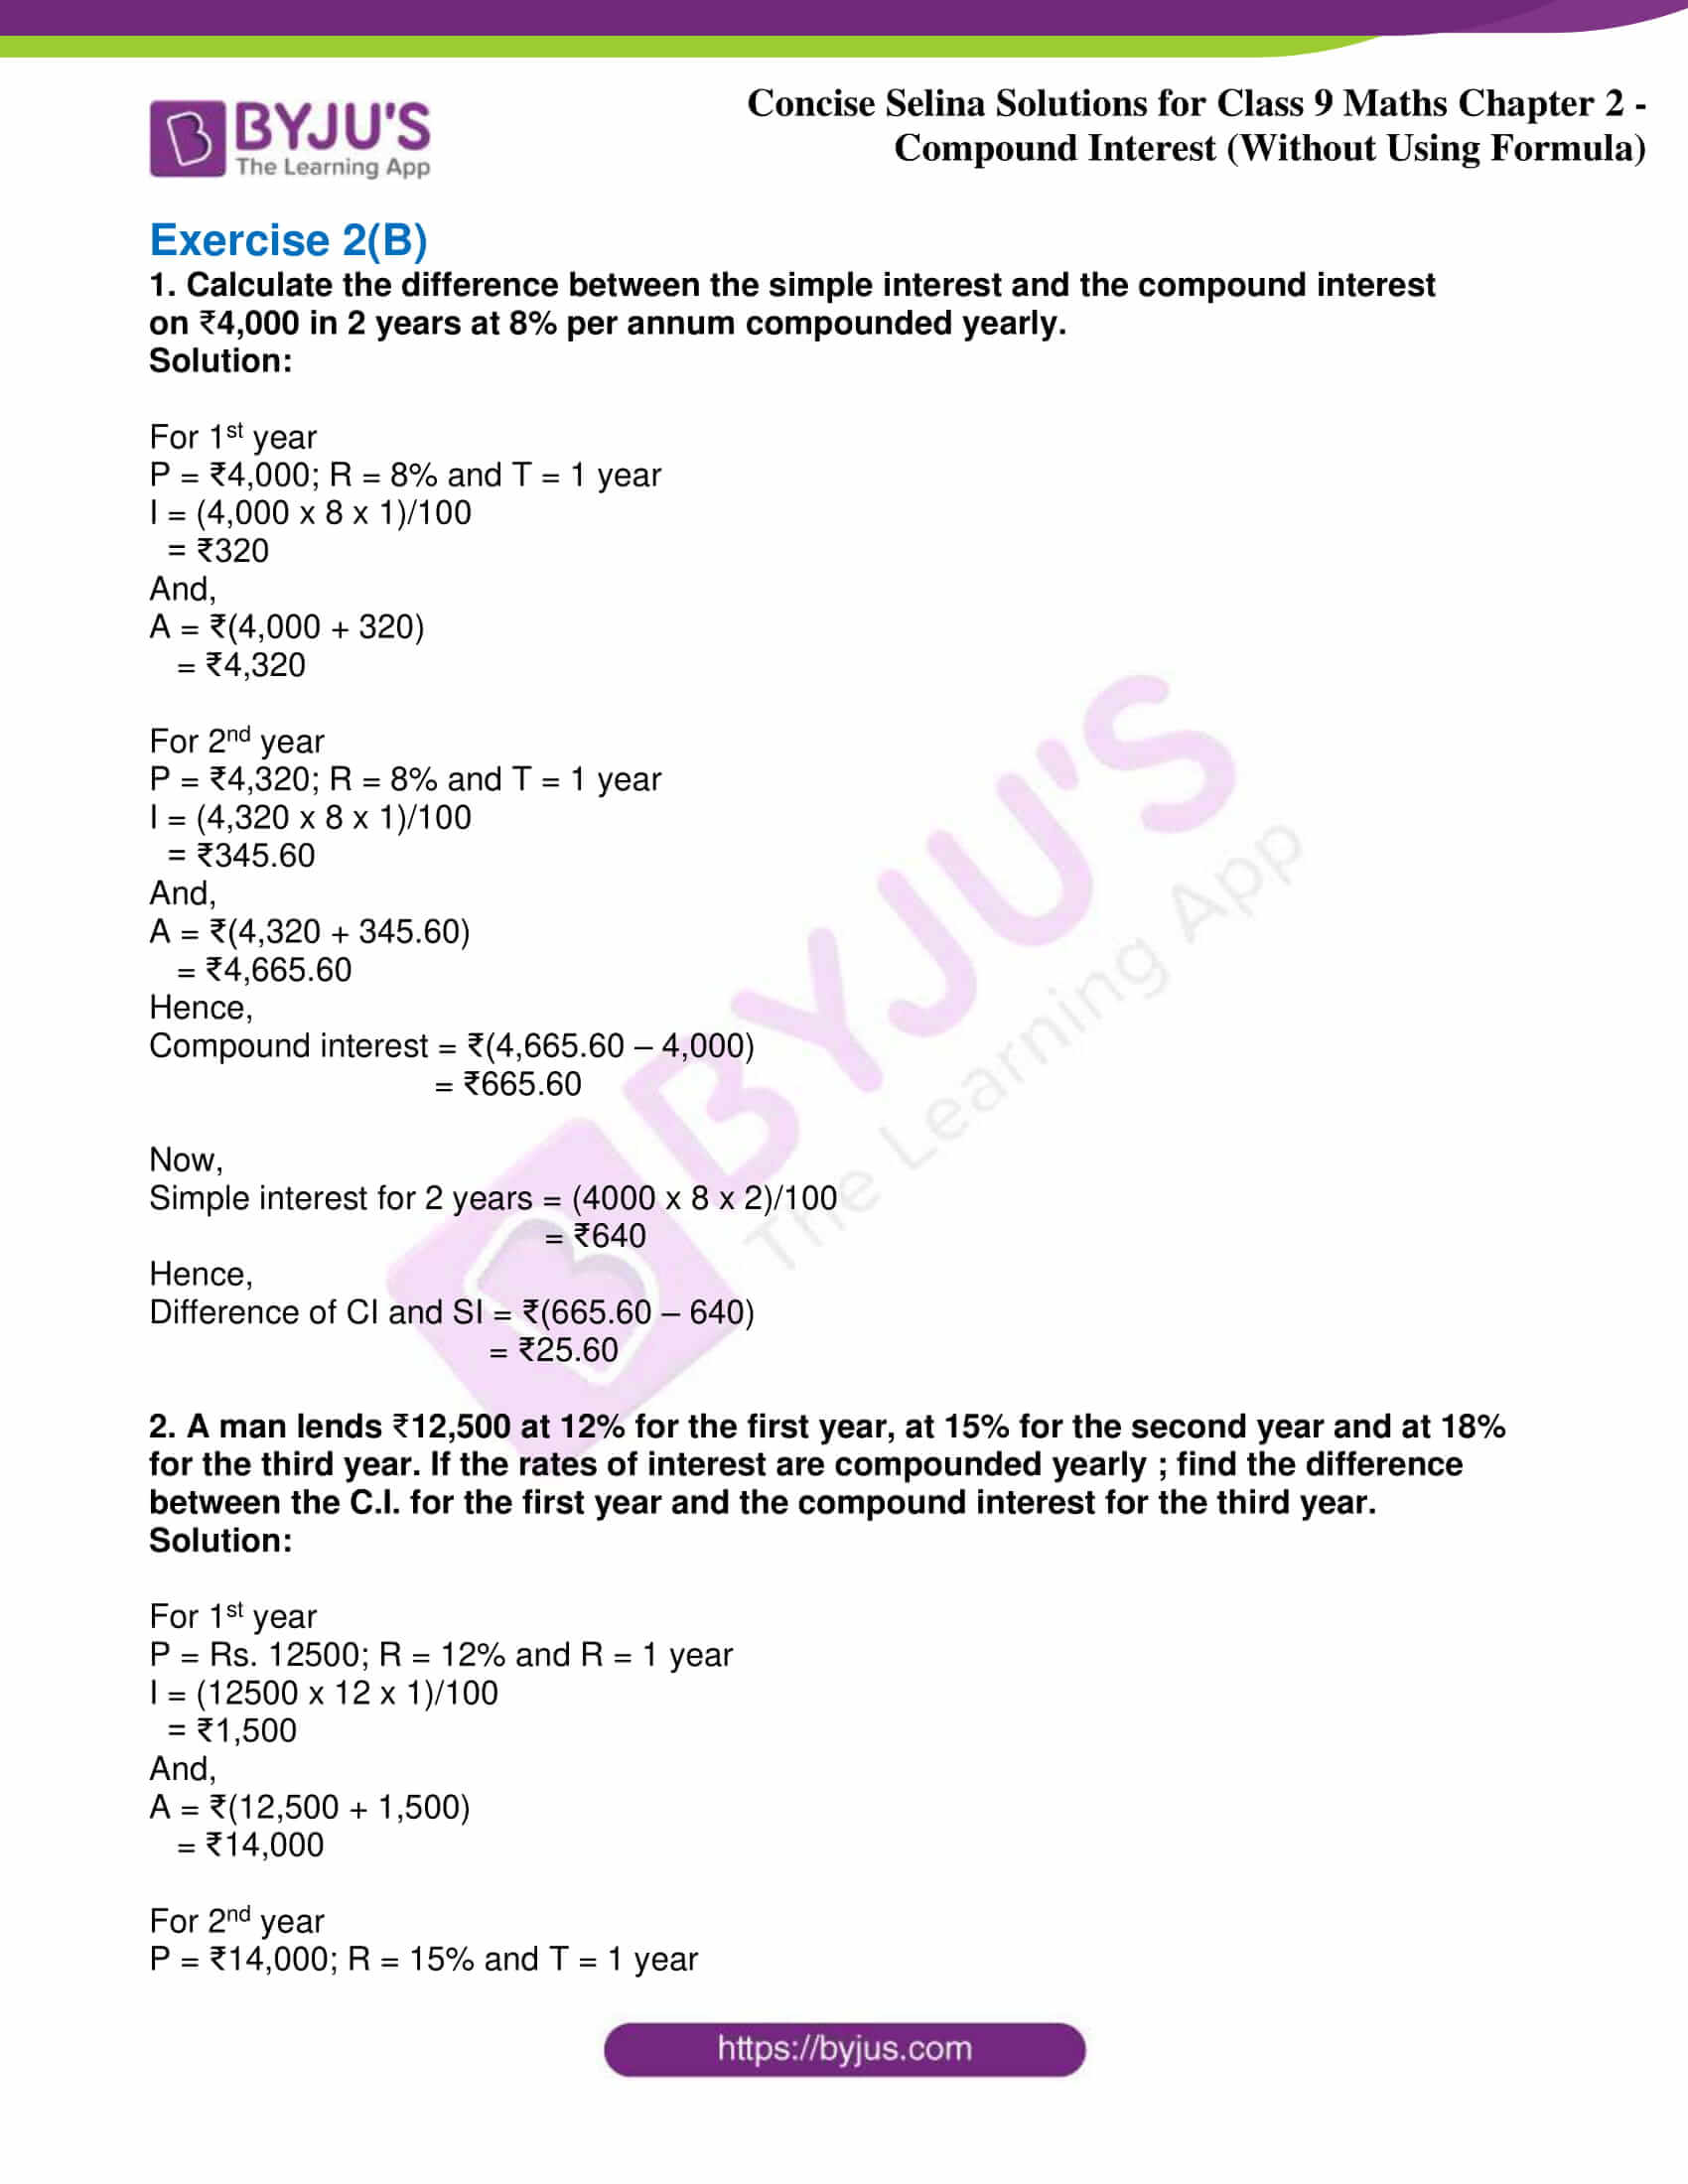 icse class 9 maths may10 selina solutions chapter 2 compound interest without using formula 08